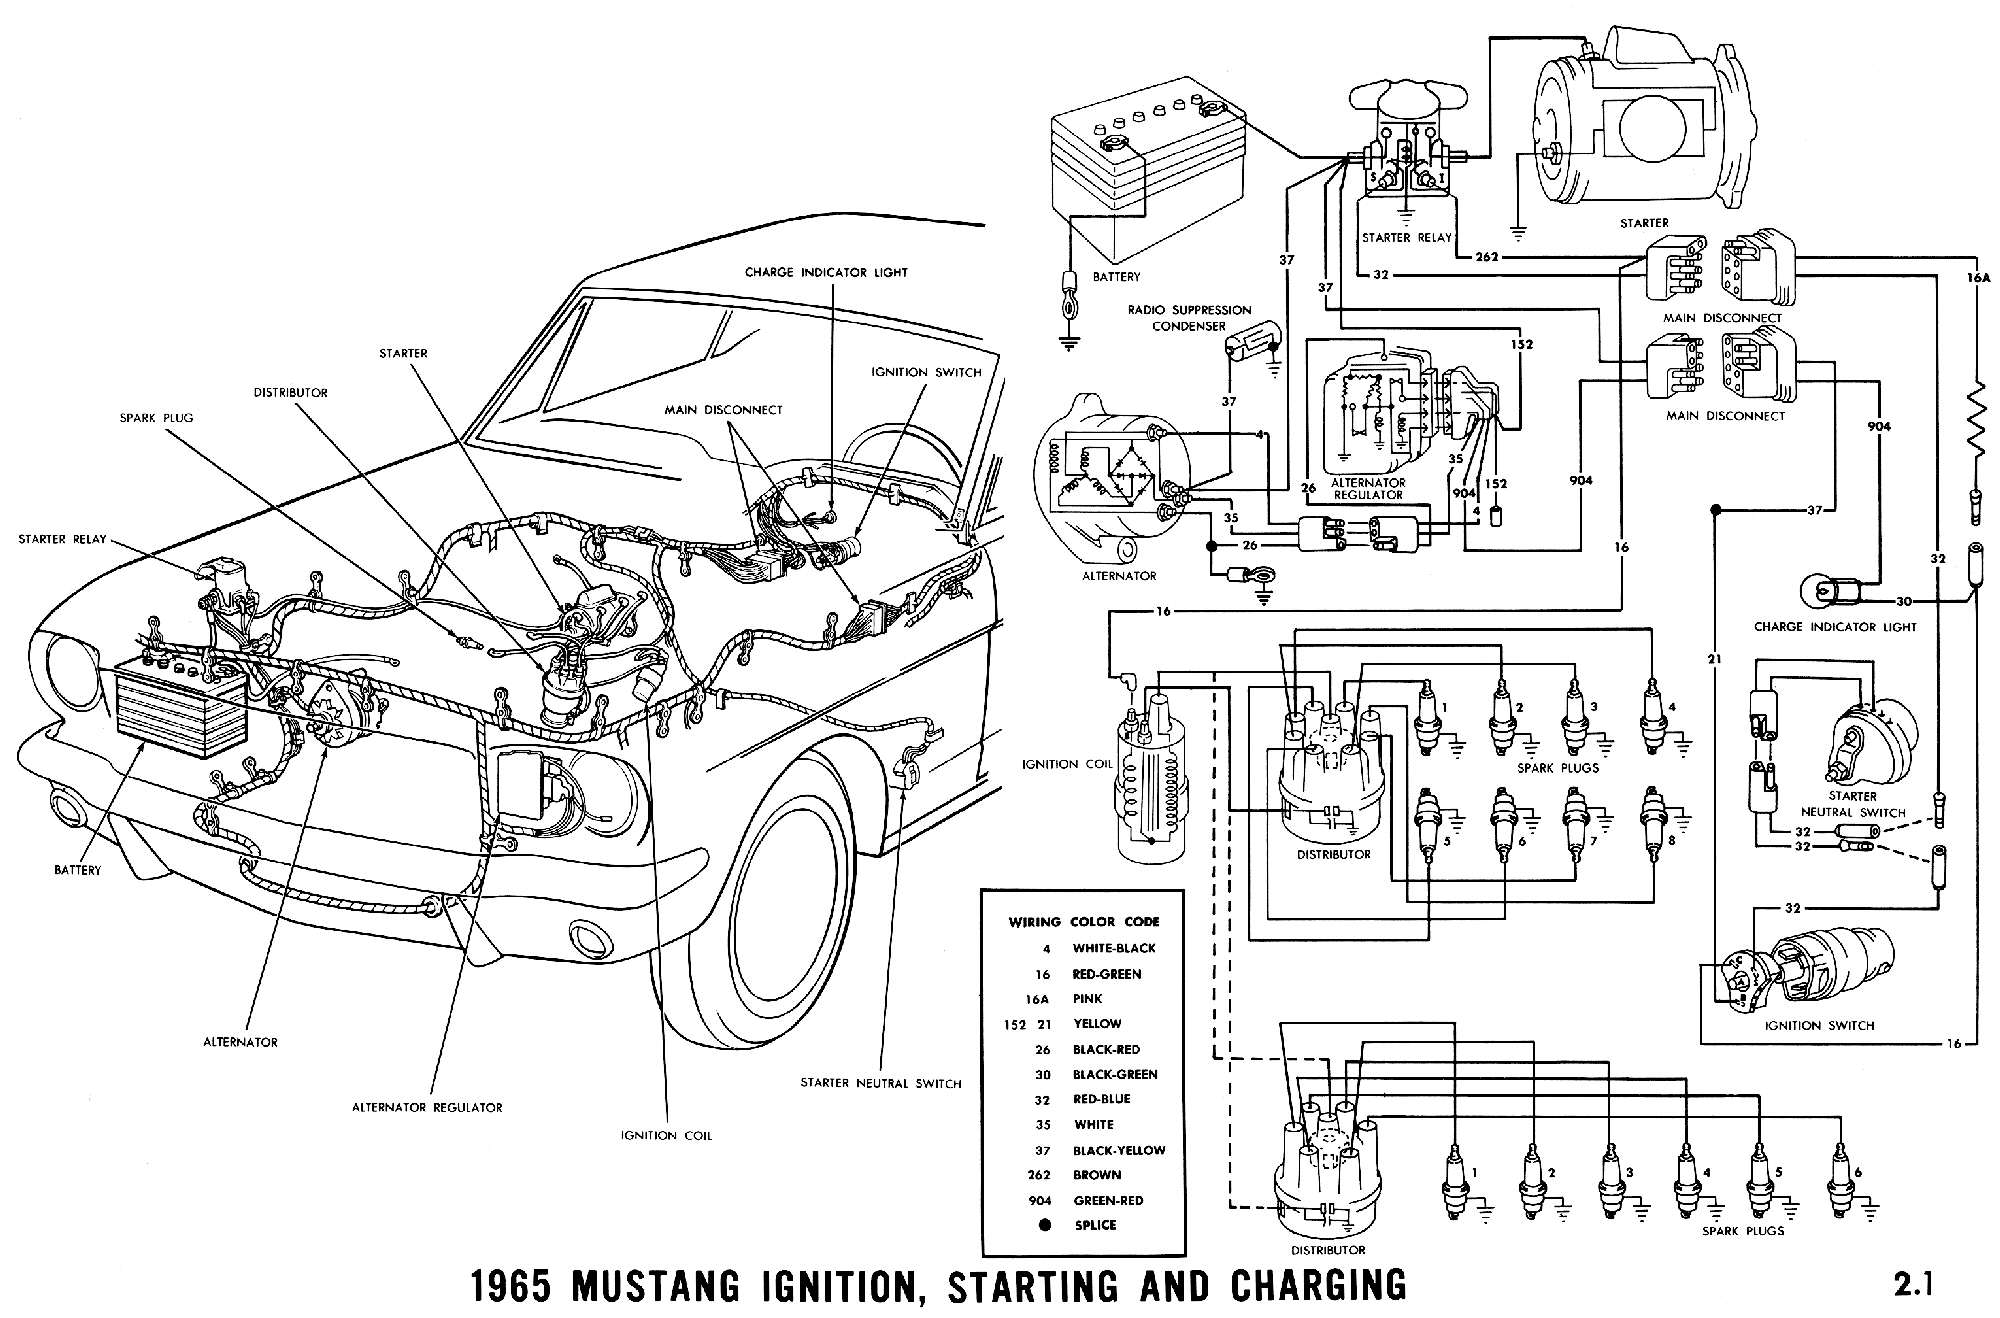 ac voltage regulator wiring diagram pdf with 1965 Mustang Wiring Diagrams on 1970 Chevelle Wiring Diagram as well Basic Sensors Diagnostics also Chevy Camaro Tail Light Wiring Diagram together with Viewthread furthermore Portable Solar Power Inverter.